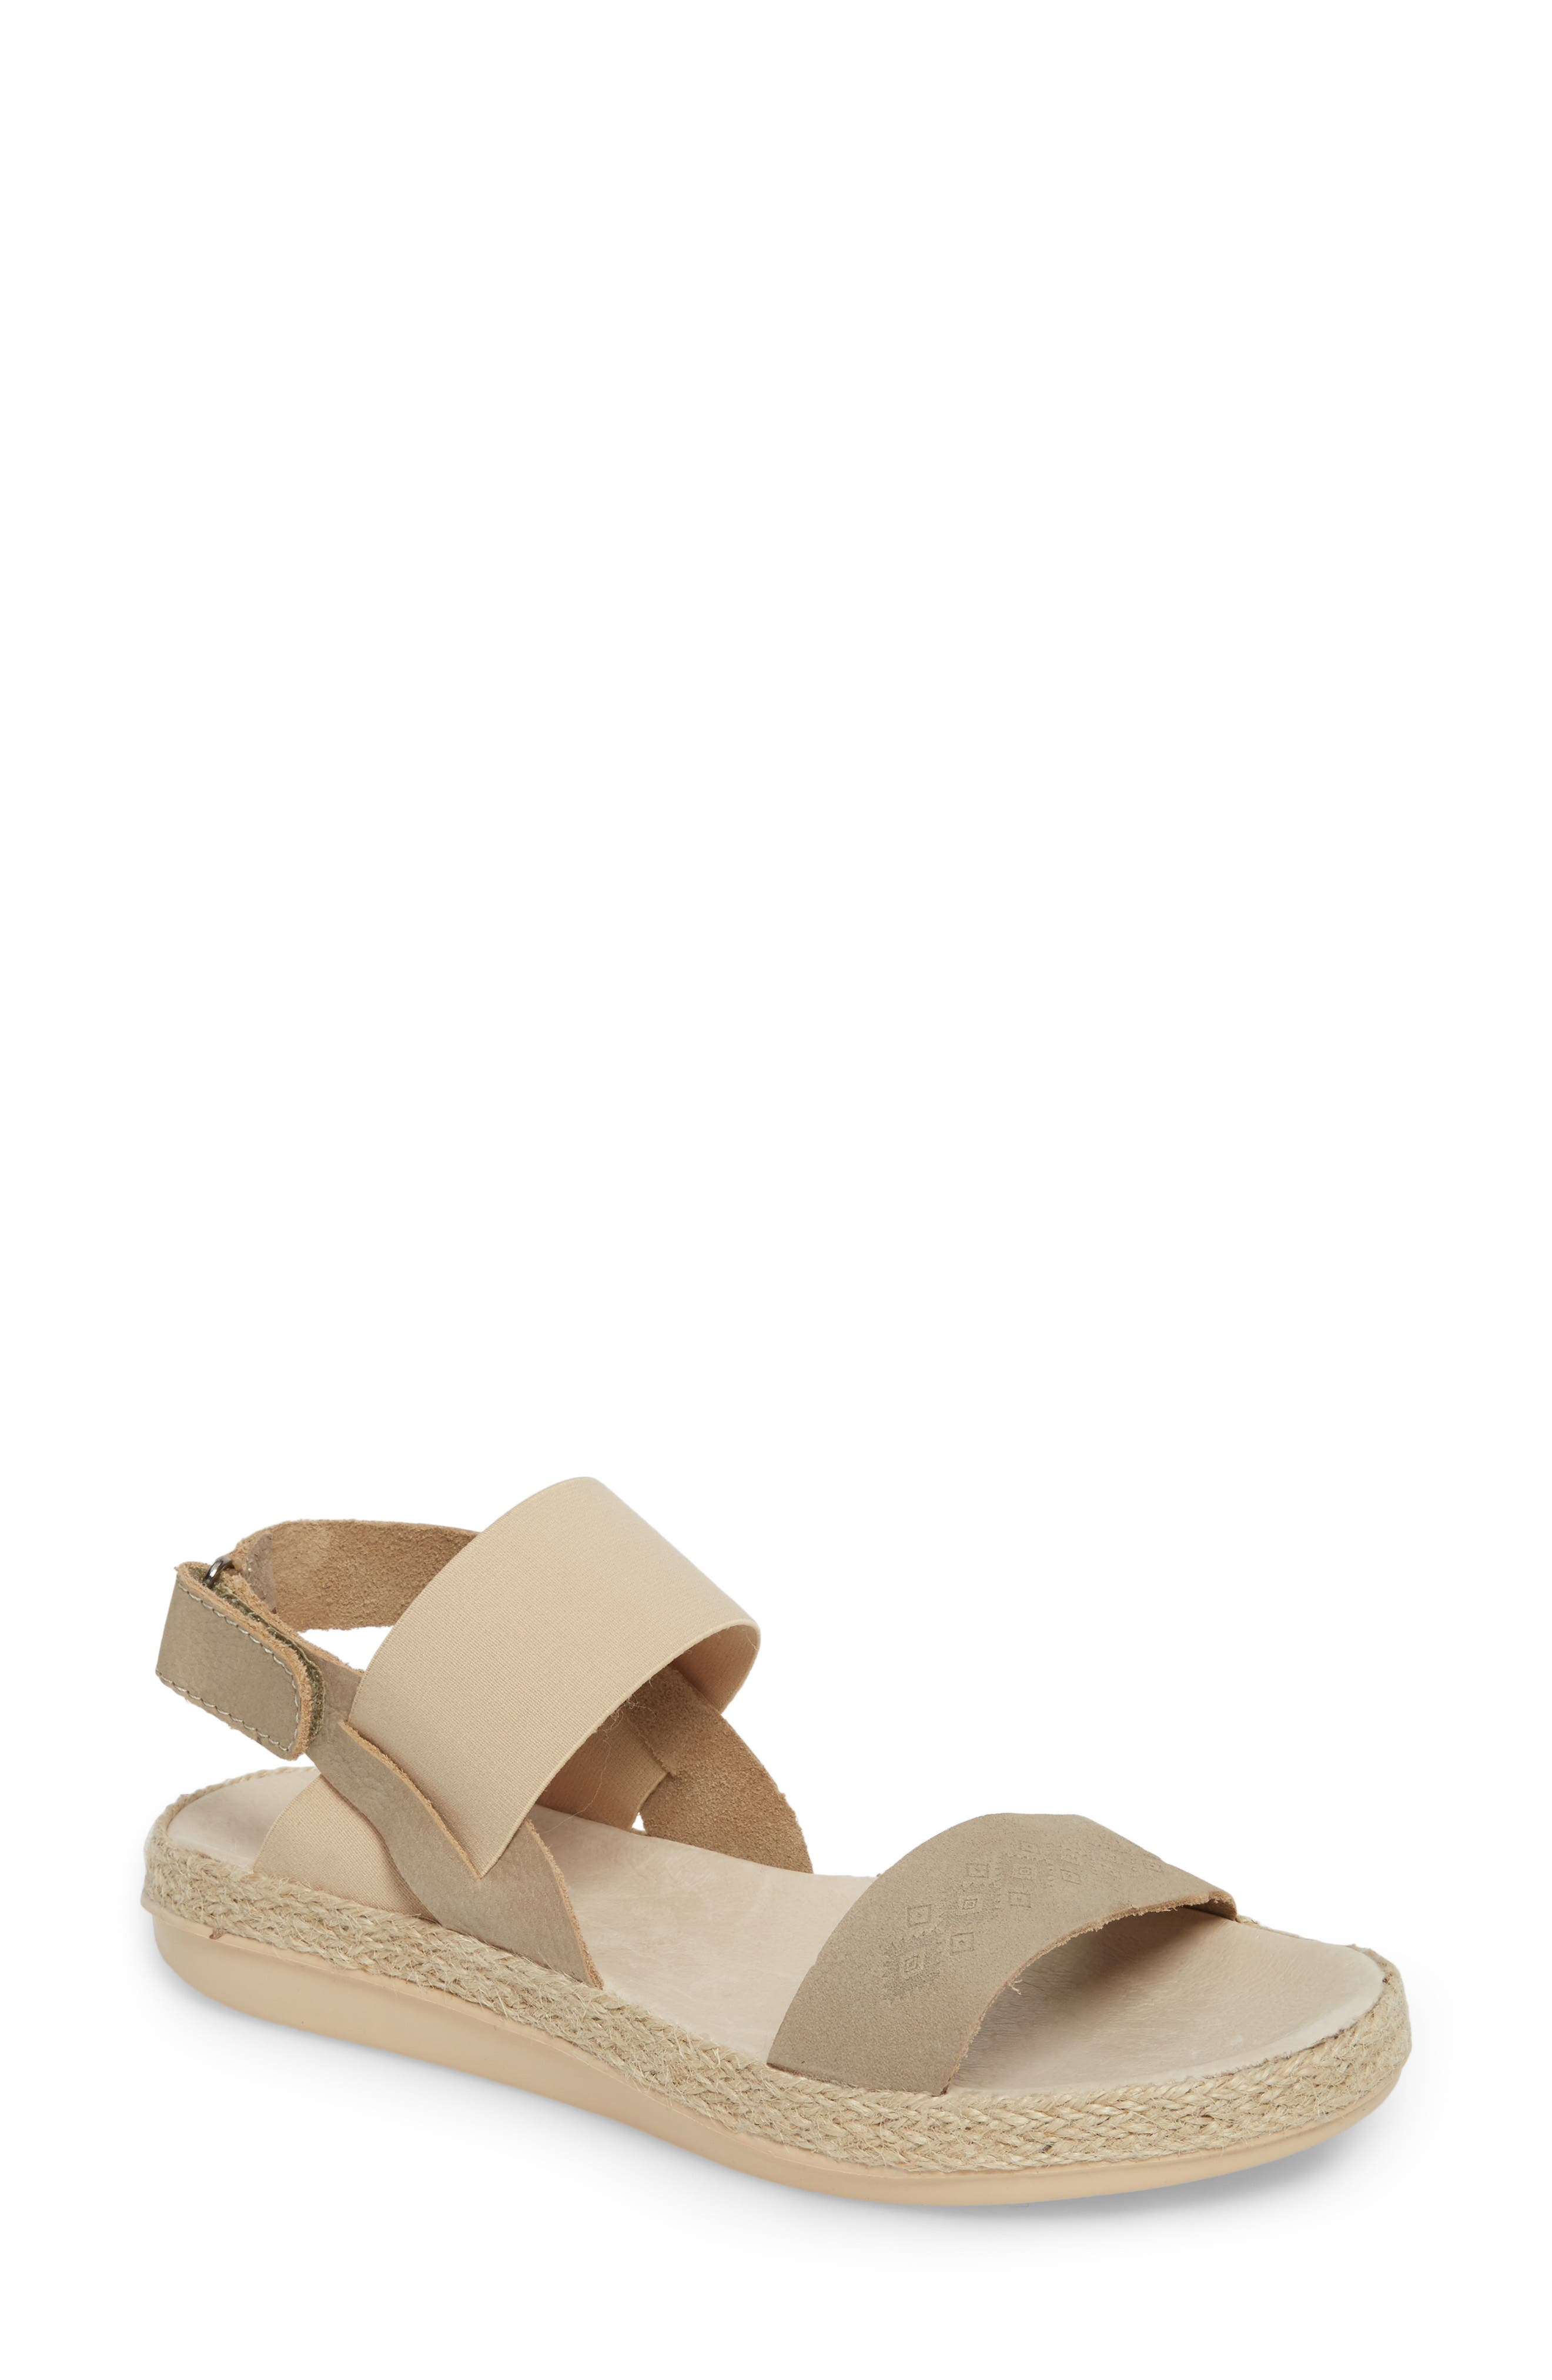 Tobermory Sandal,                             Main thumbnail 1, color,                             Taupe Leather